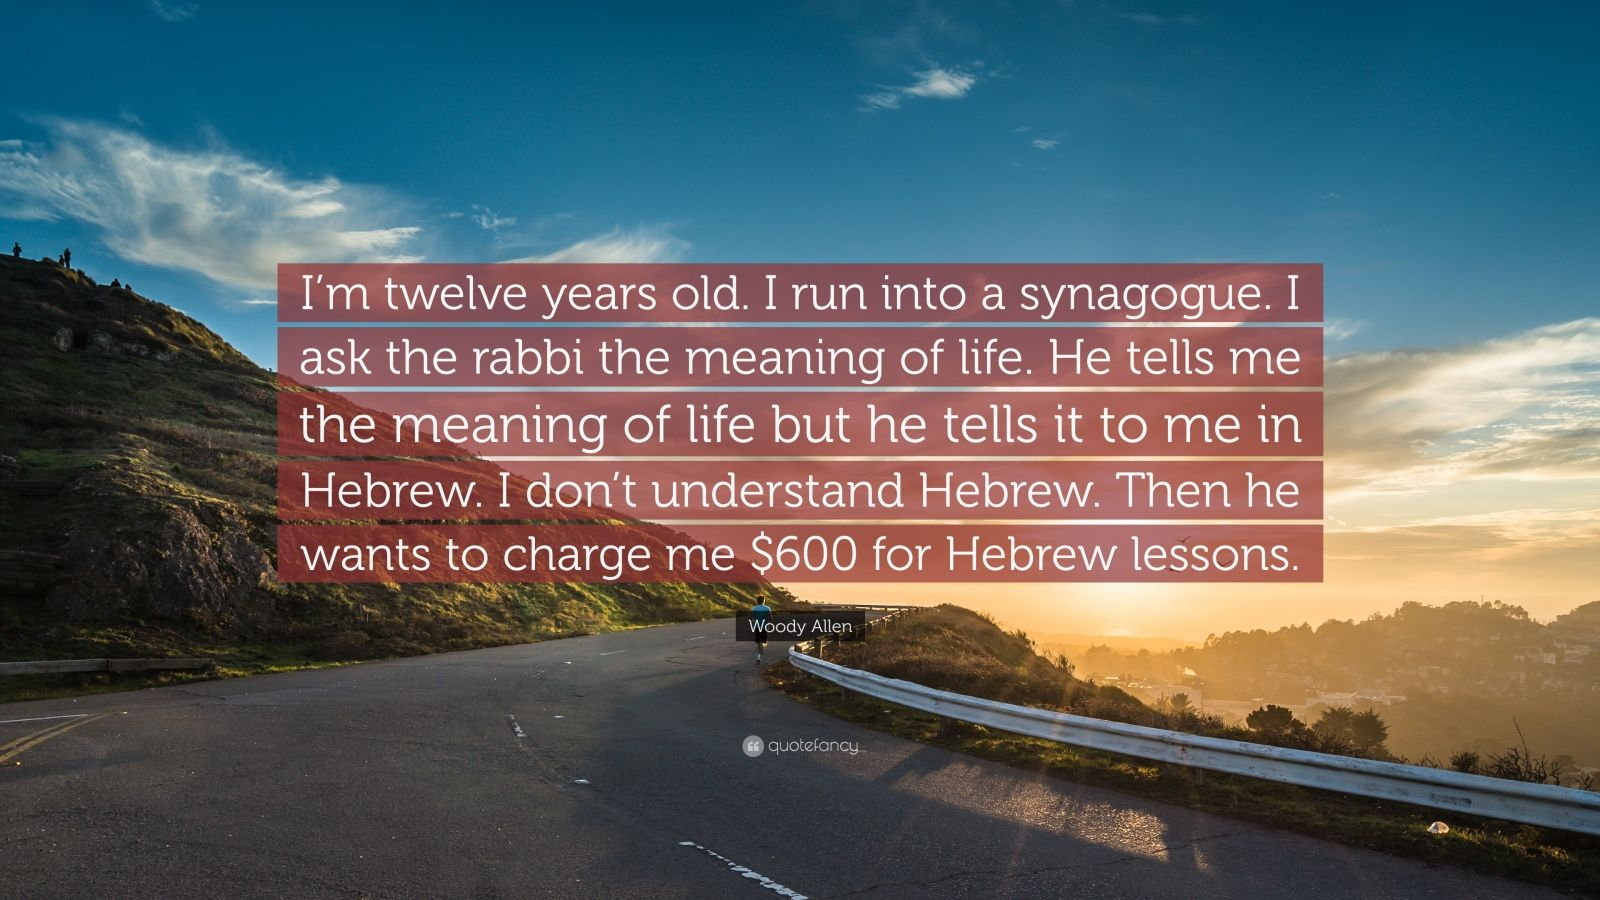 """Woody Allen Quote: """"I'm twelve years old. I run into a synagogue. I ask the rabbi the meaning of life. He tells me the meaning of life but he tells it to me in Hebrew. I don't understand Hebrew. Then he wants to charge me $600 for Hebrew lessons."""""""